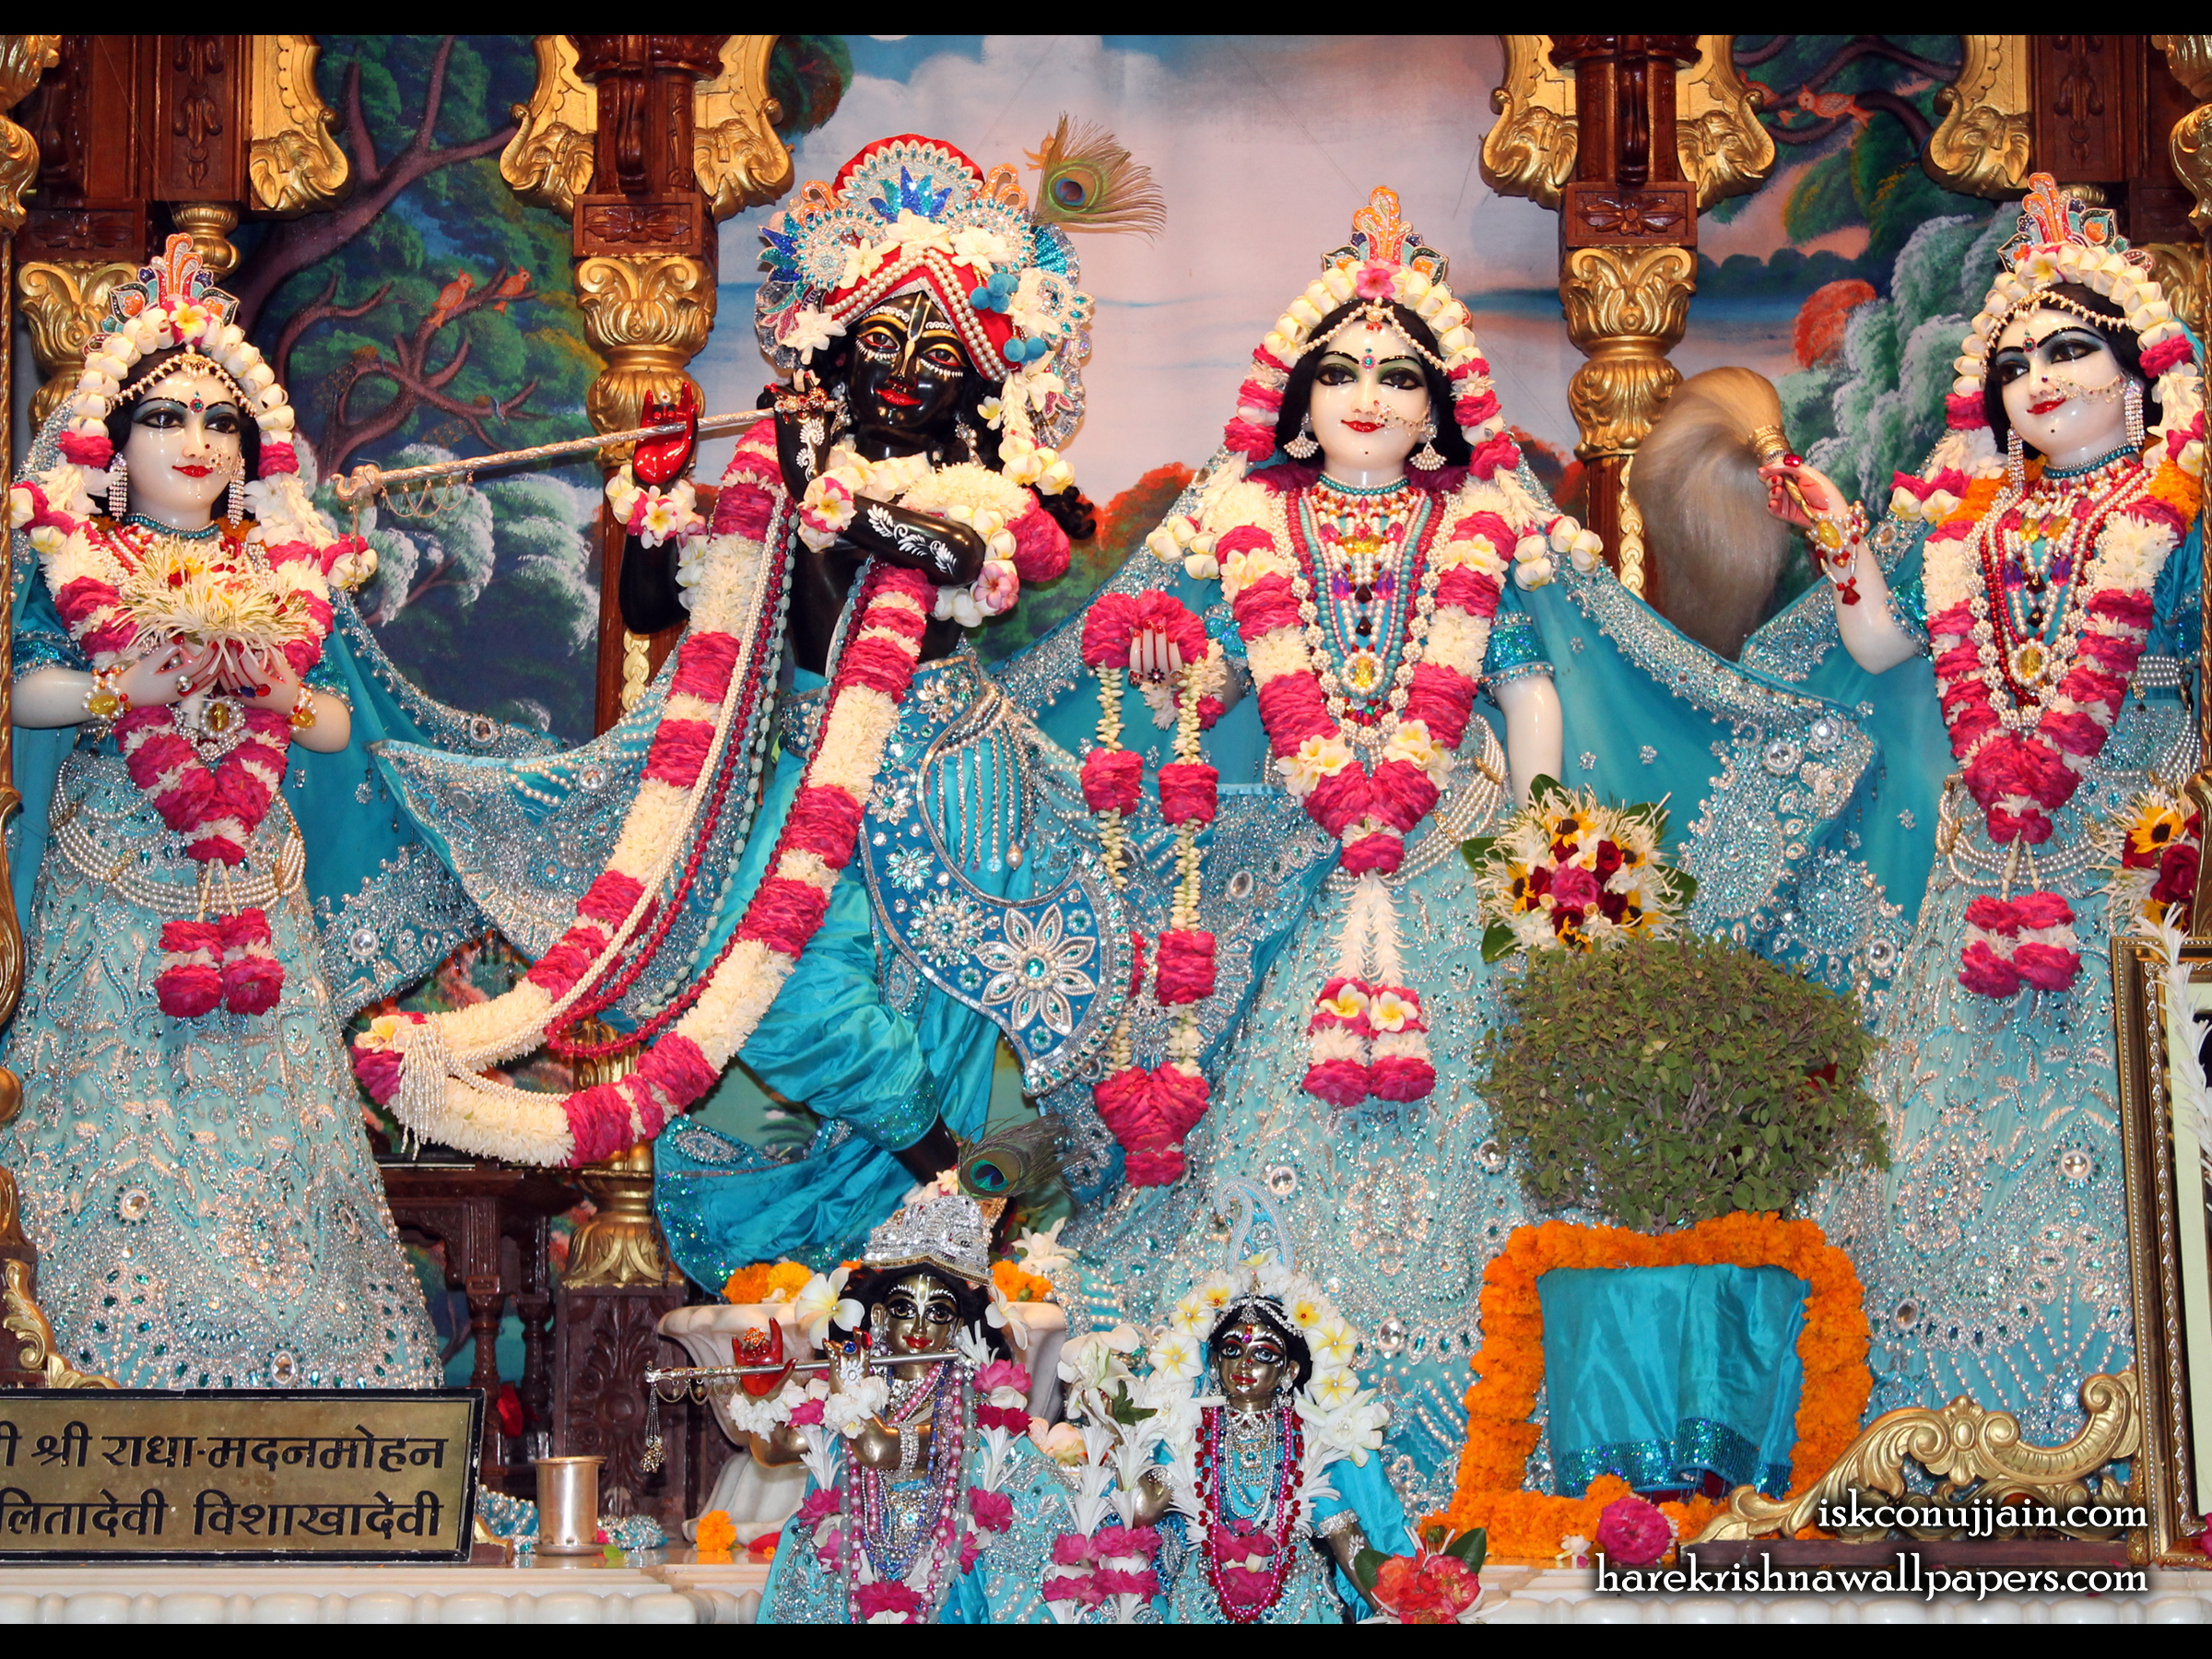 Sri Sri Radha Madanmohan Lalita Vishakha Wallpaper (006) Size 2400x1800 Download